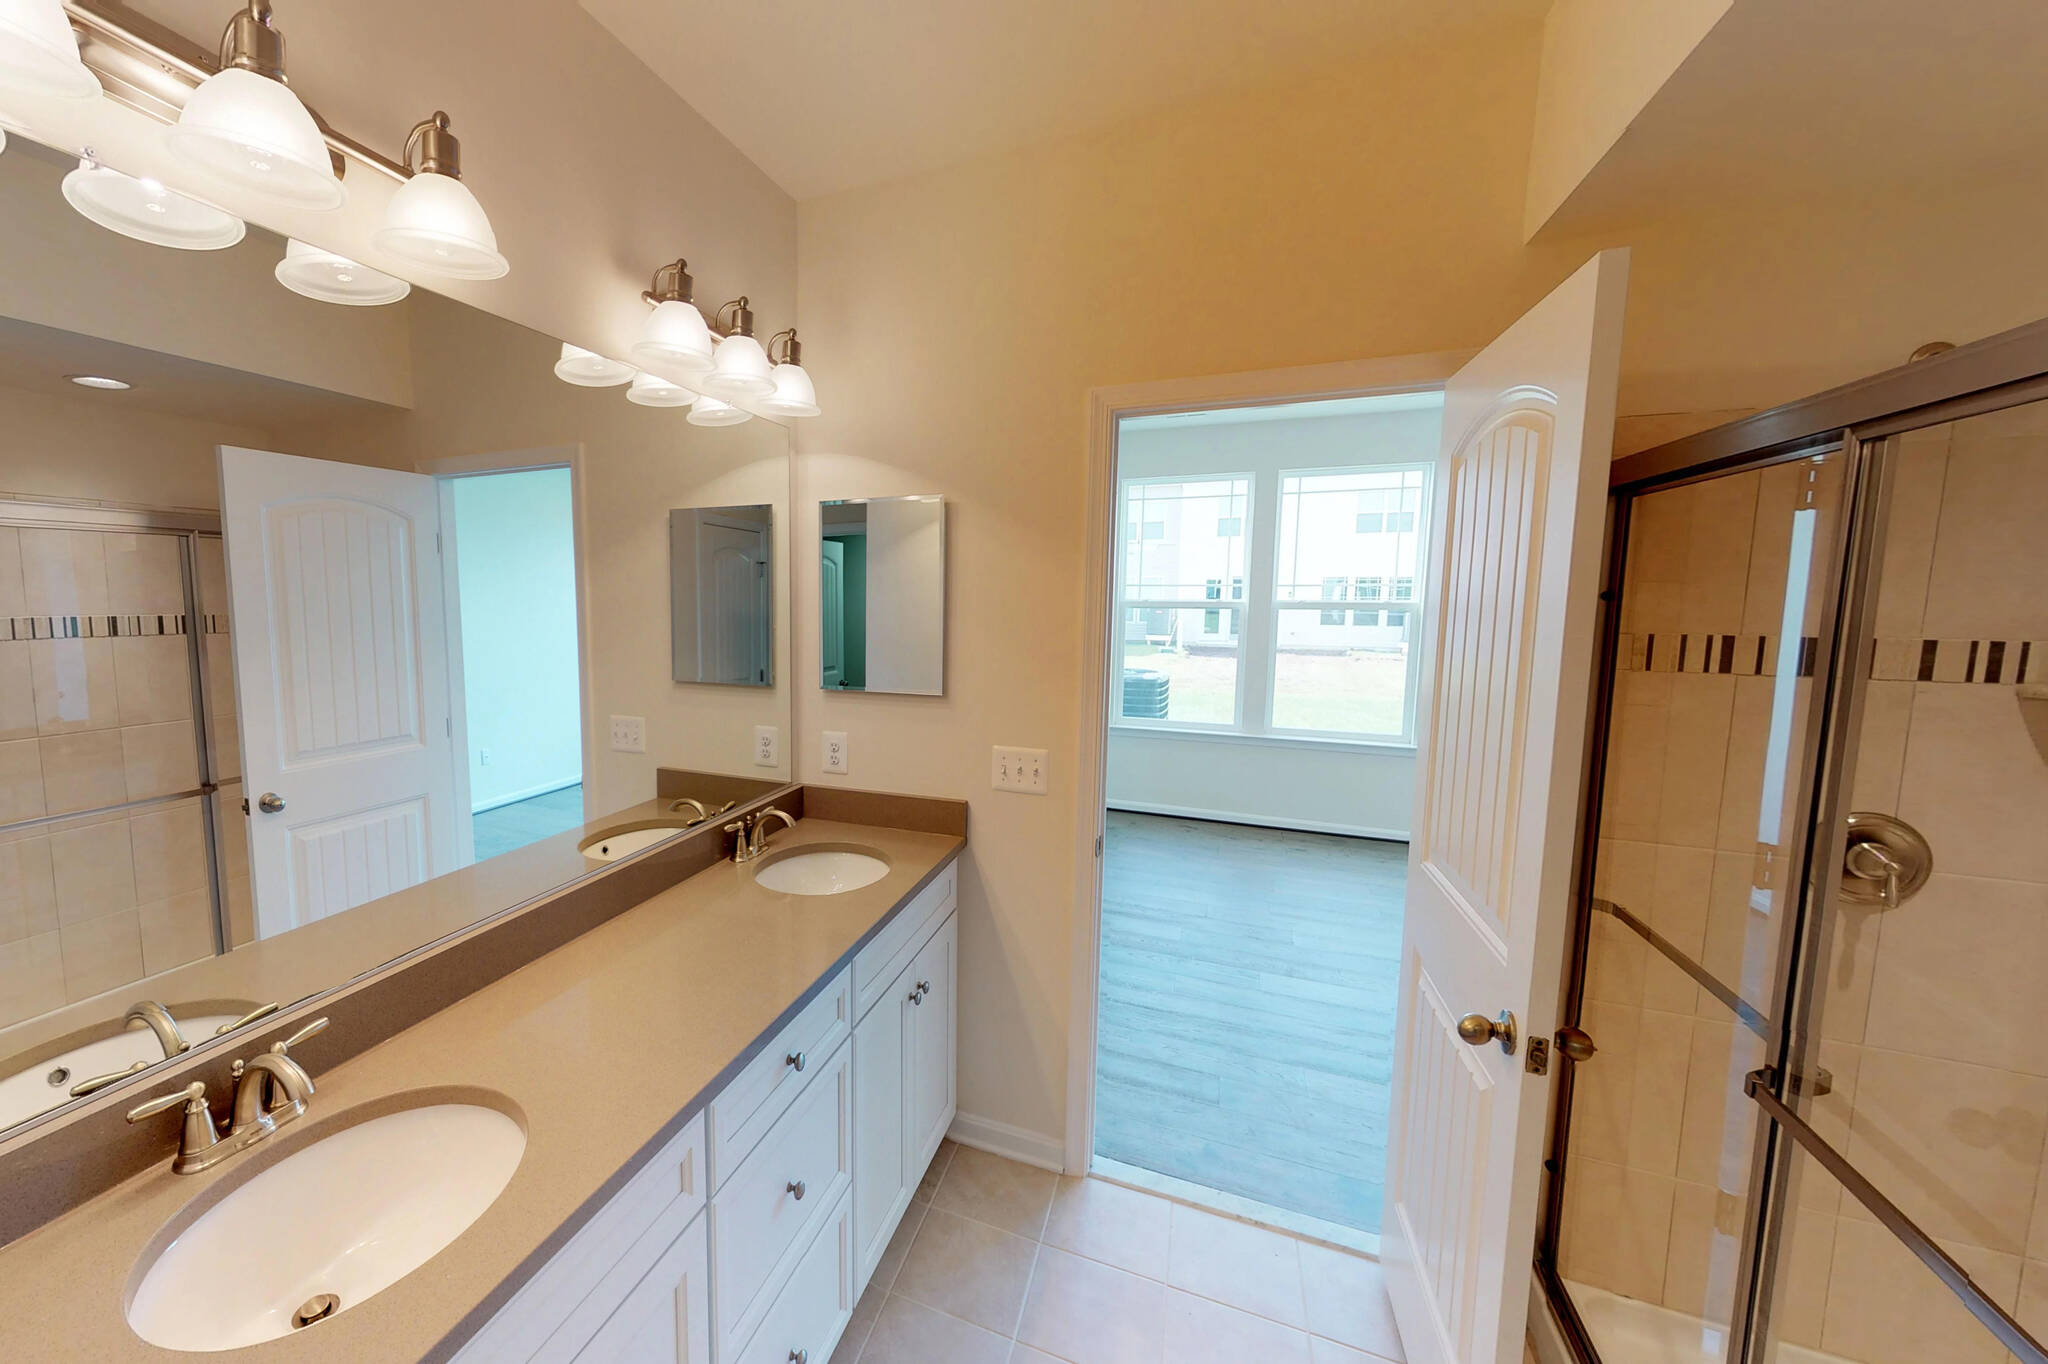 owners bath1-1 seashore II 6 lot 165 new homes at beach club